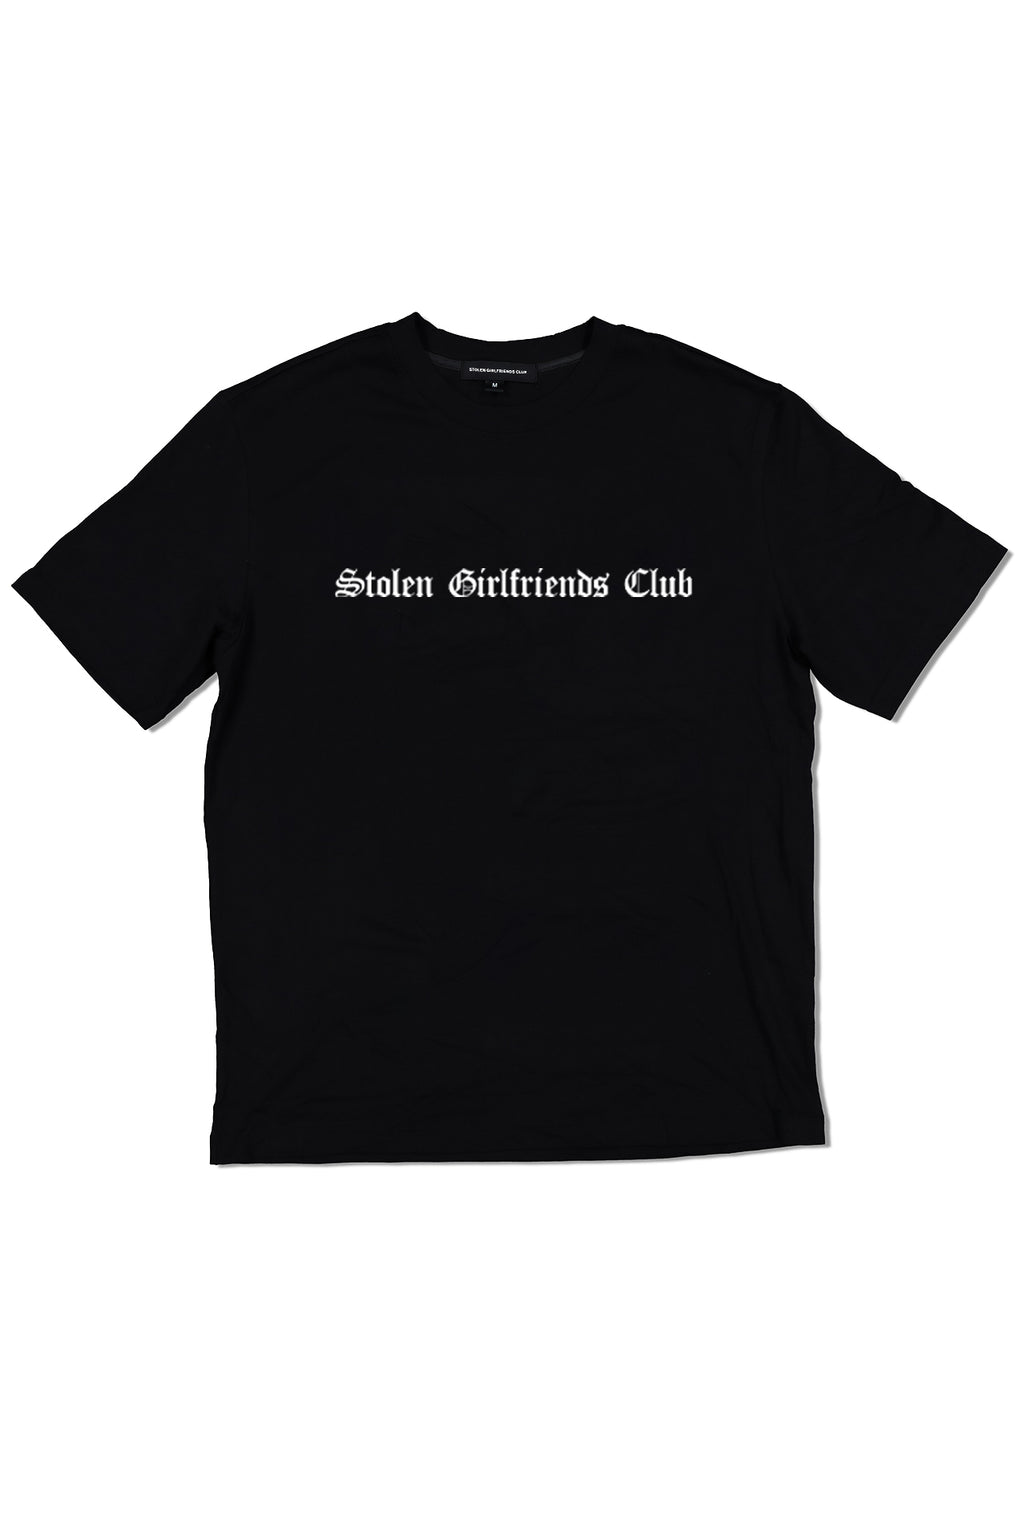 STOLEN GIRLFRIENDS CLUB  //  UNISEX Gothic Logo Tee BLACK